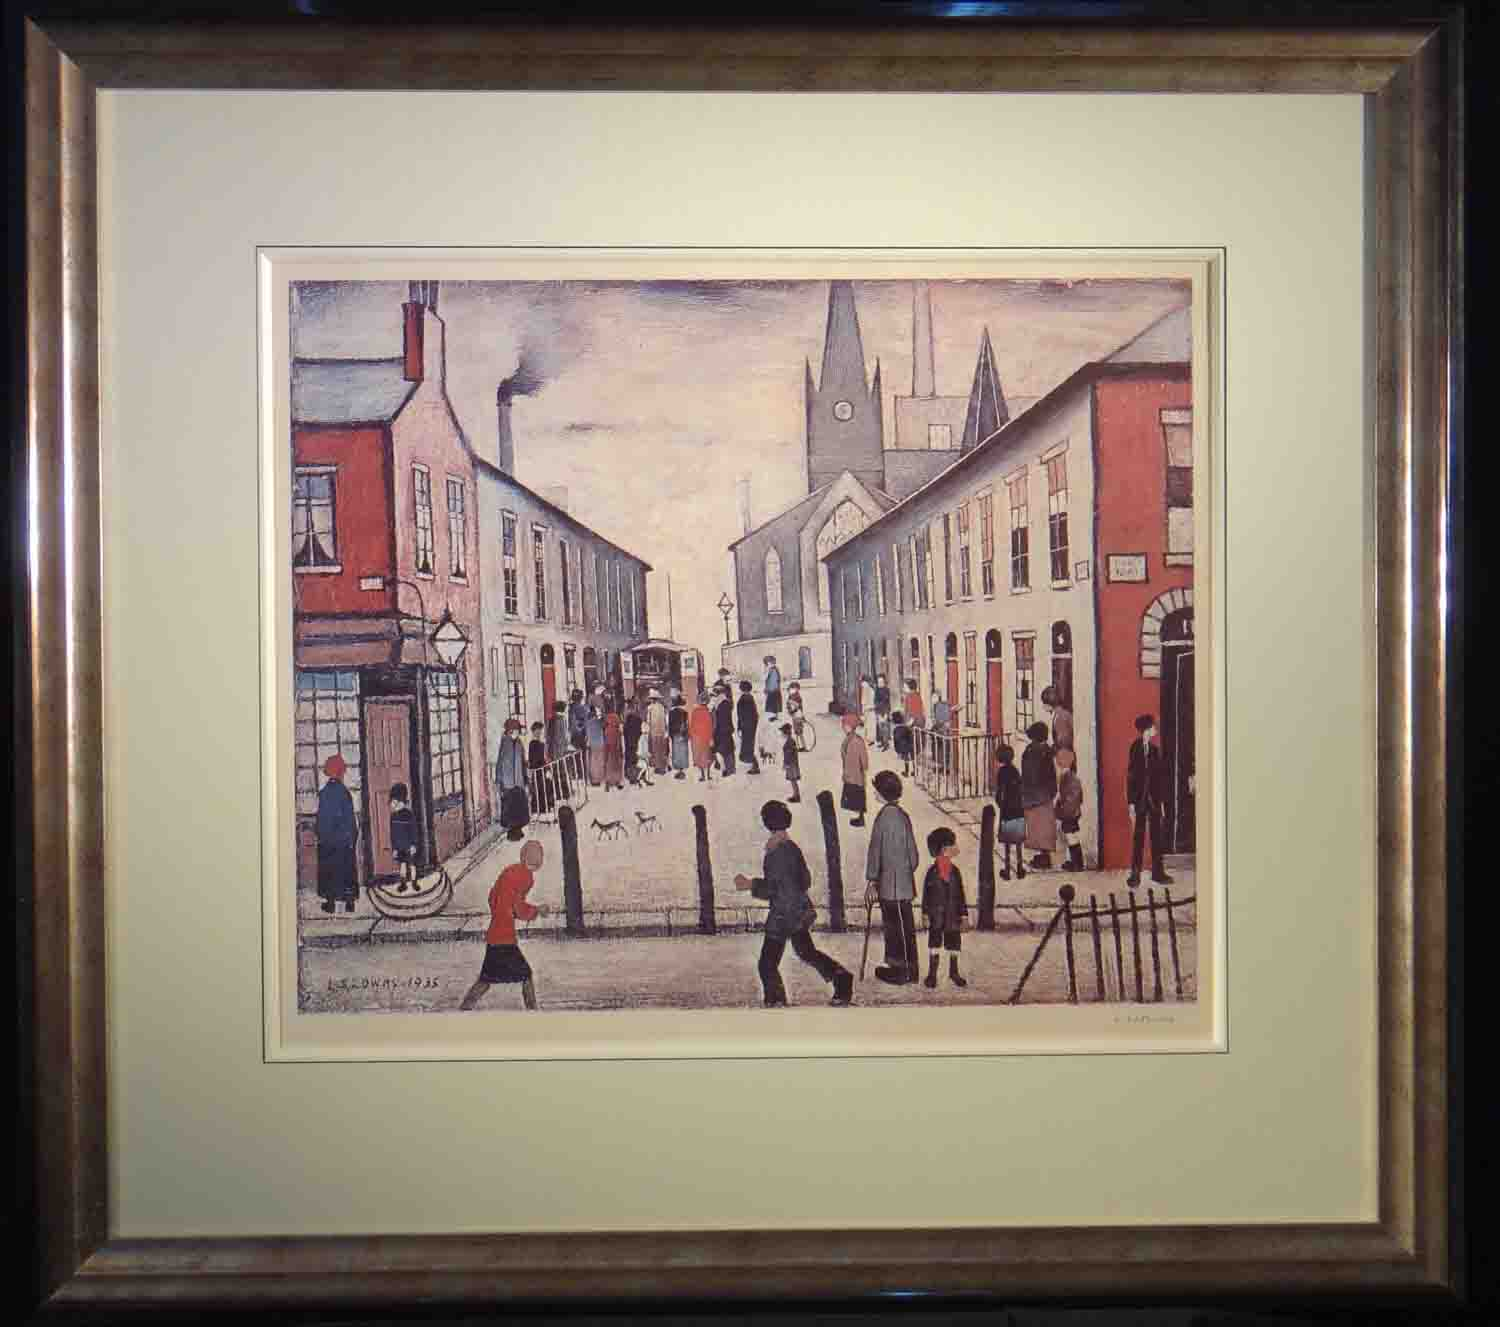 lowry, Fever Van, Salford, signed print lslowry